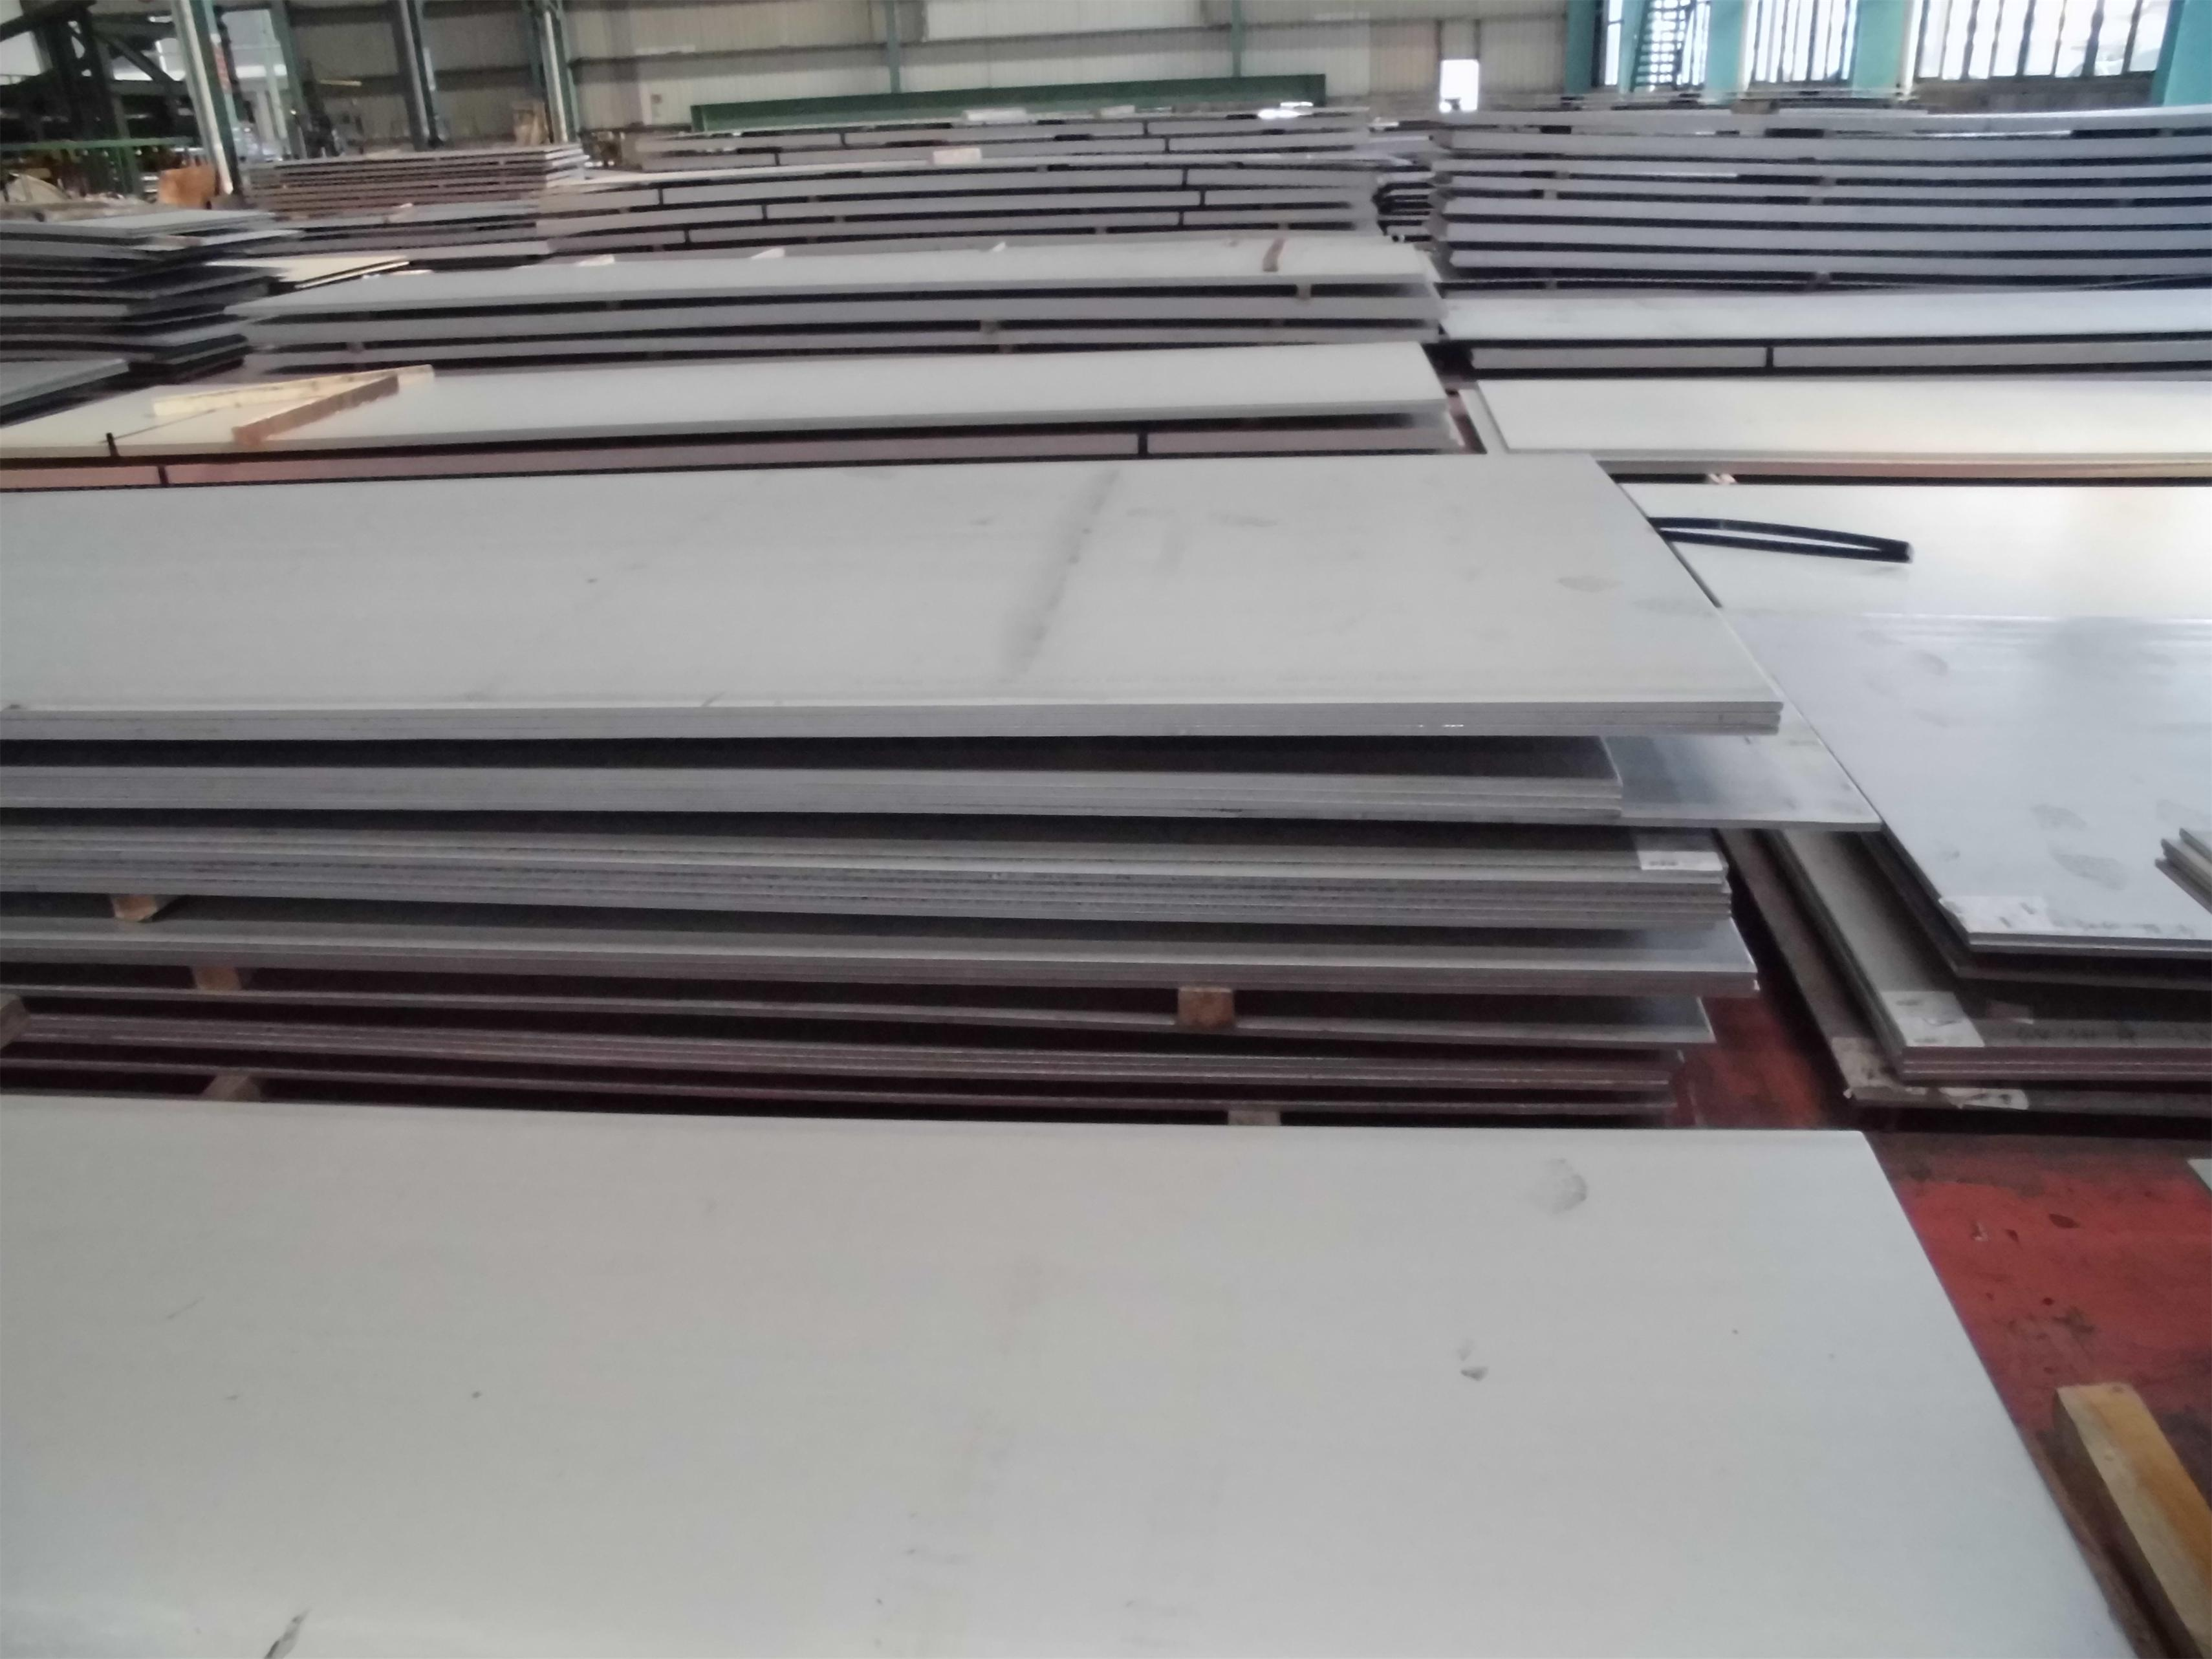 316 stainless steel plate, 316 steel sheet, 316 stainless steel, SS316 stainless steel coil